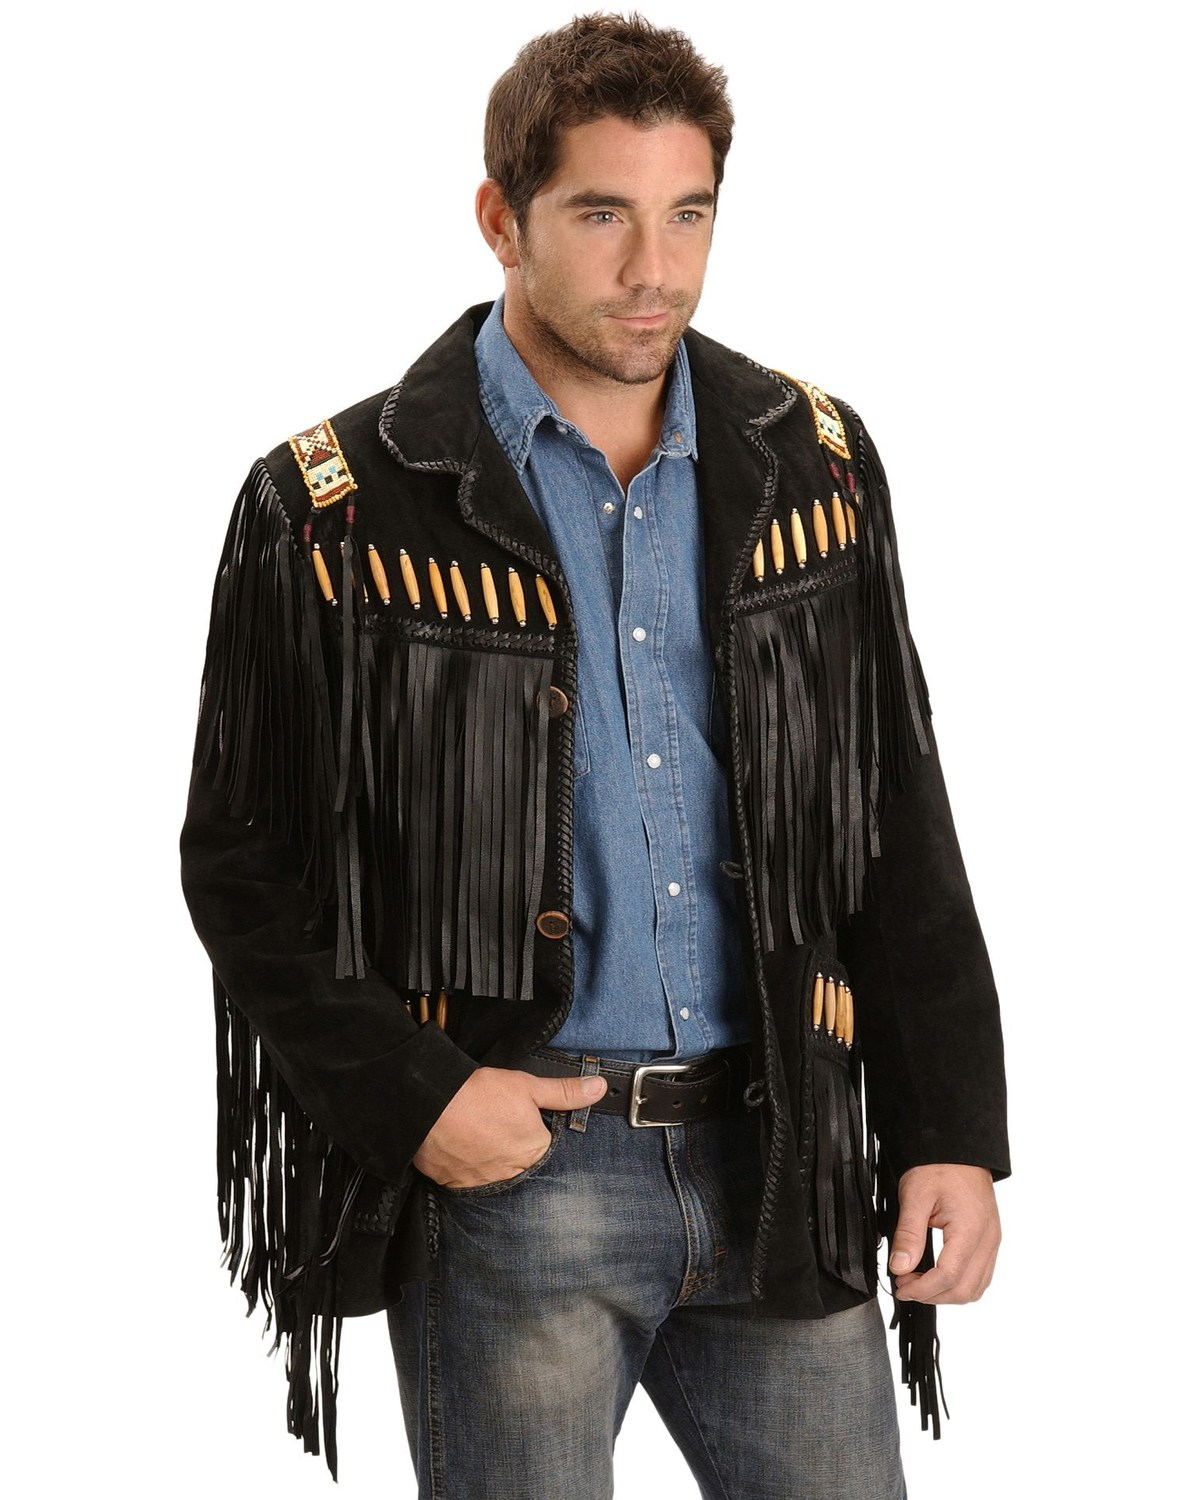 Beaded Fringe Scully Leather Jacket Men/'s 40 American Indian Inspired Bead Work Long Leather Fringe Black Leather